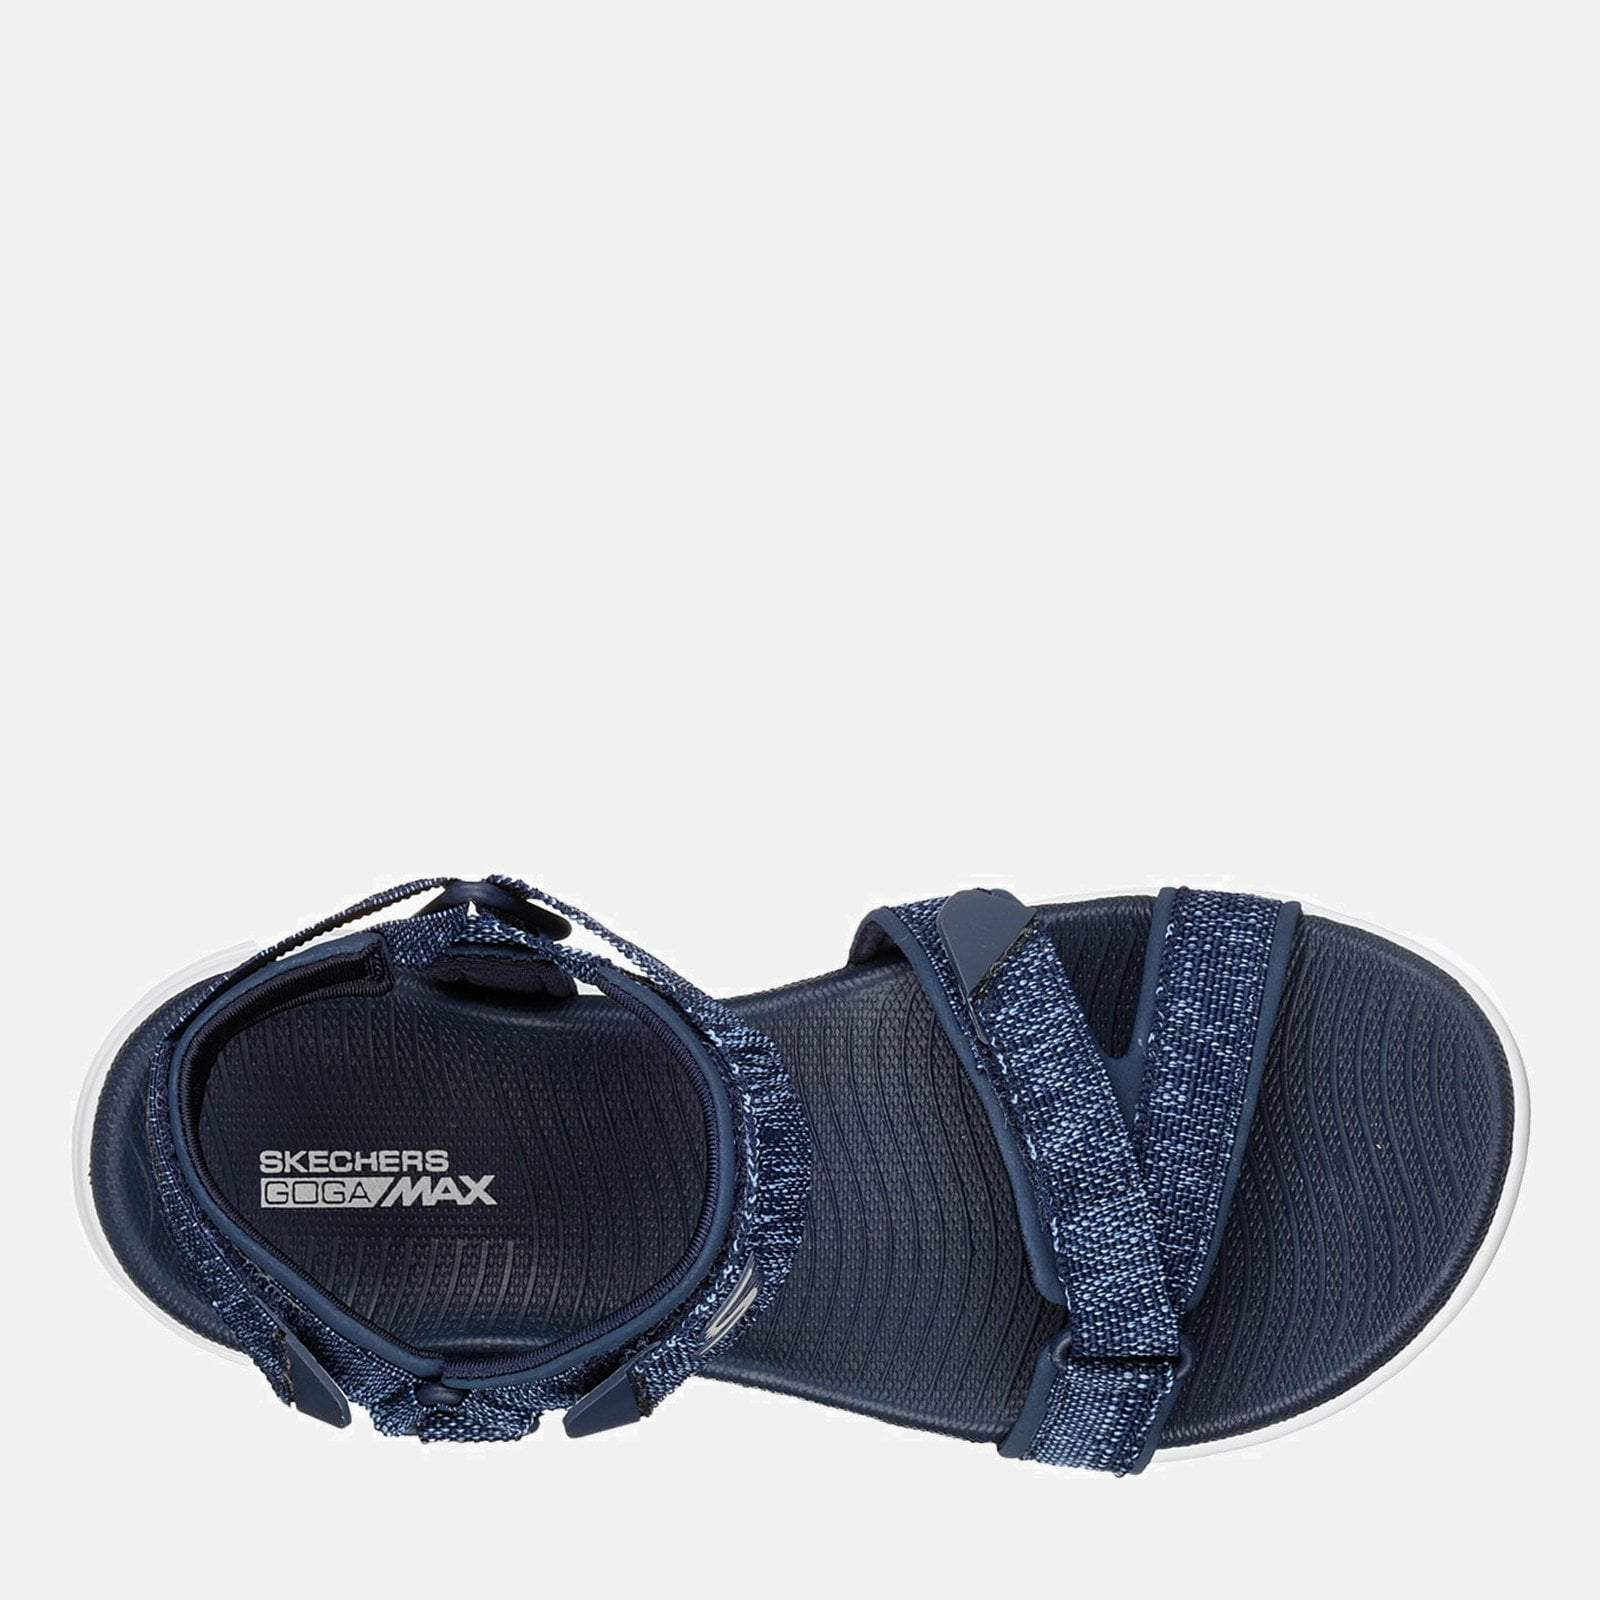 f21ff45425db Skechers Footwear 36 EU   White On-The-Go 600 Radiant 15315 Navy White. Skechers  Footwear 36 EU   White On-The-Go 600 Radiant 15315 Navy White